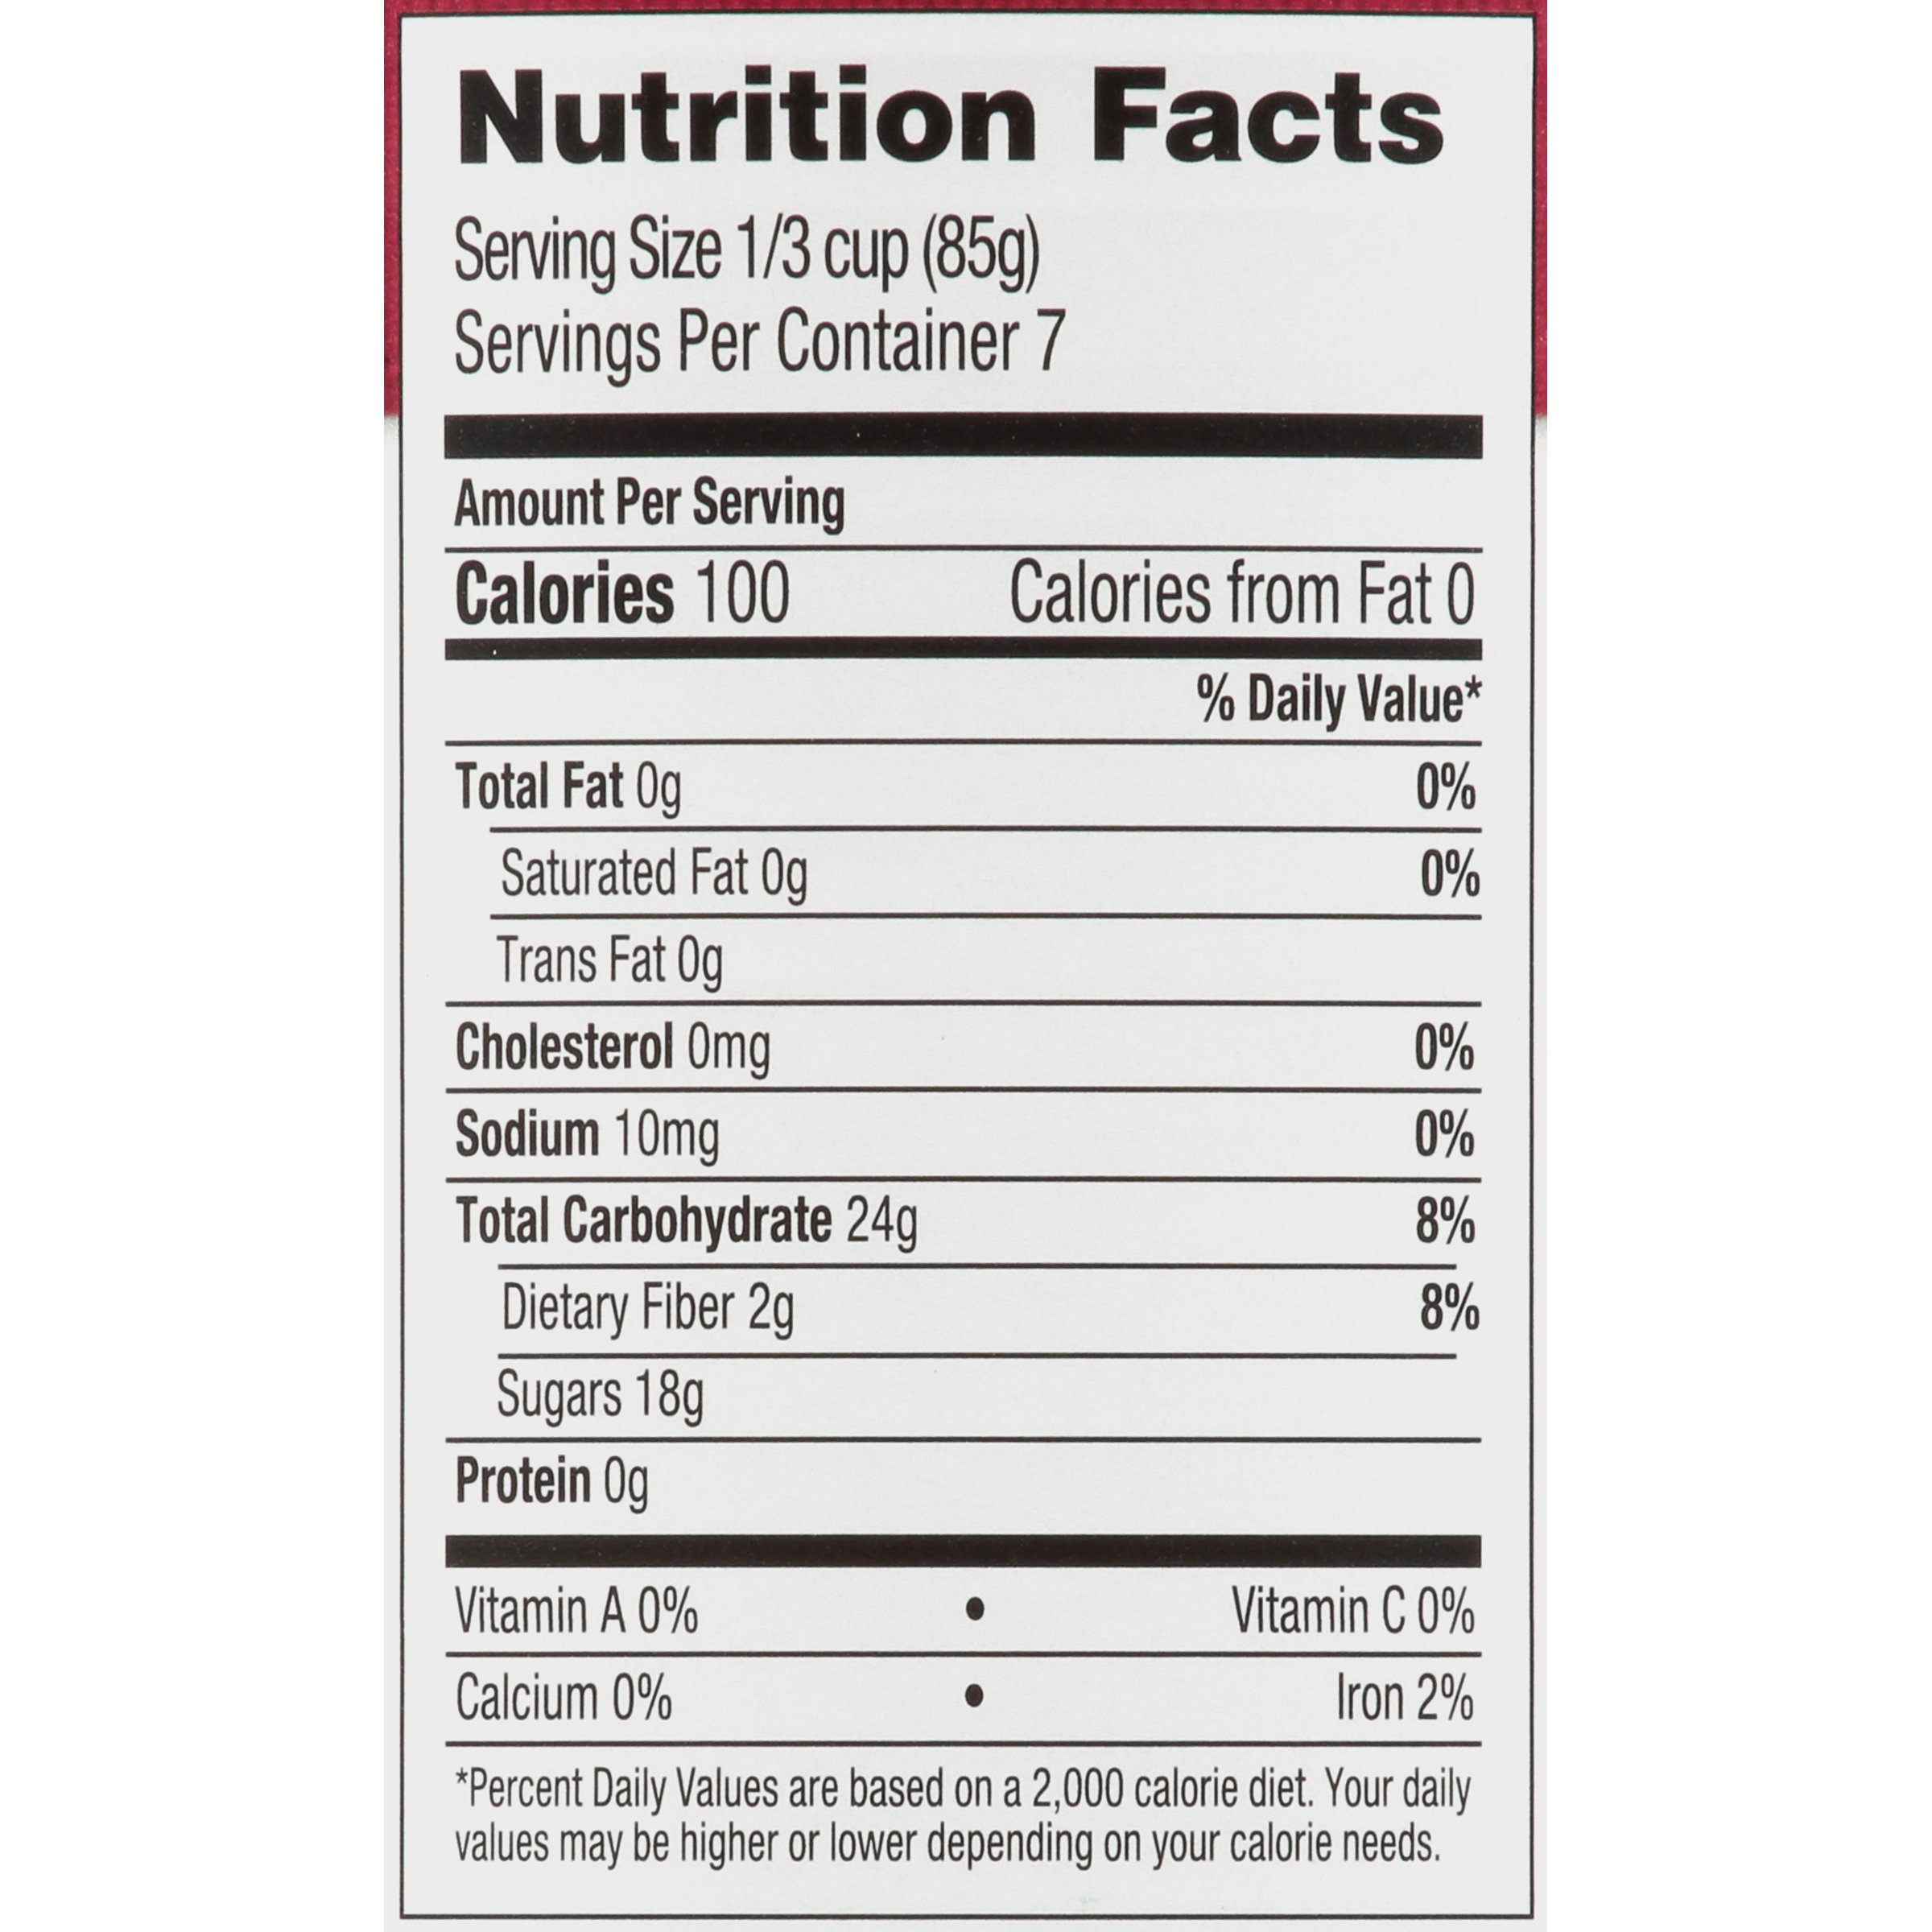 Lucky Leaf Premium Blueberry Fruit Filling & Topping, 21 Ounce (Pack of 8) by Lucky Leaf (Image #5)